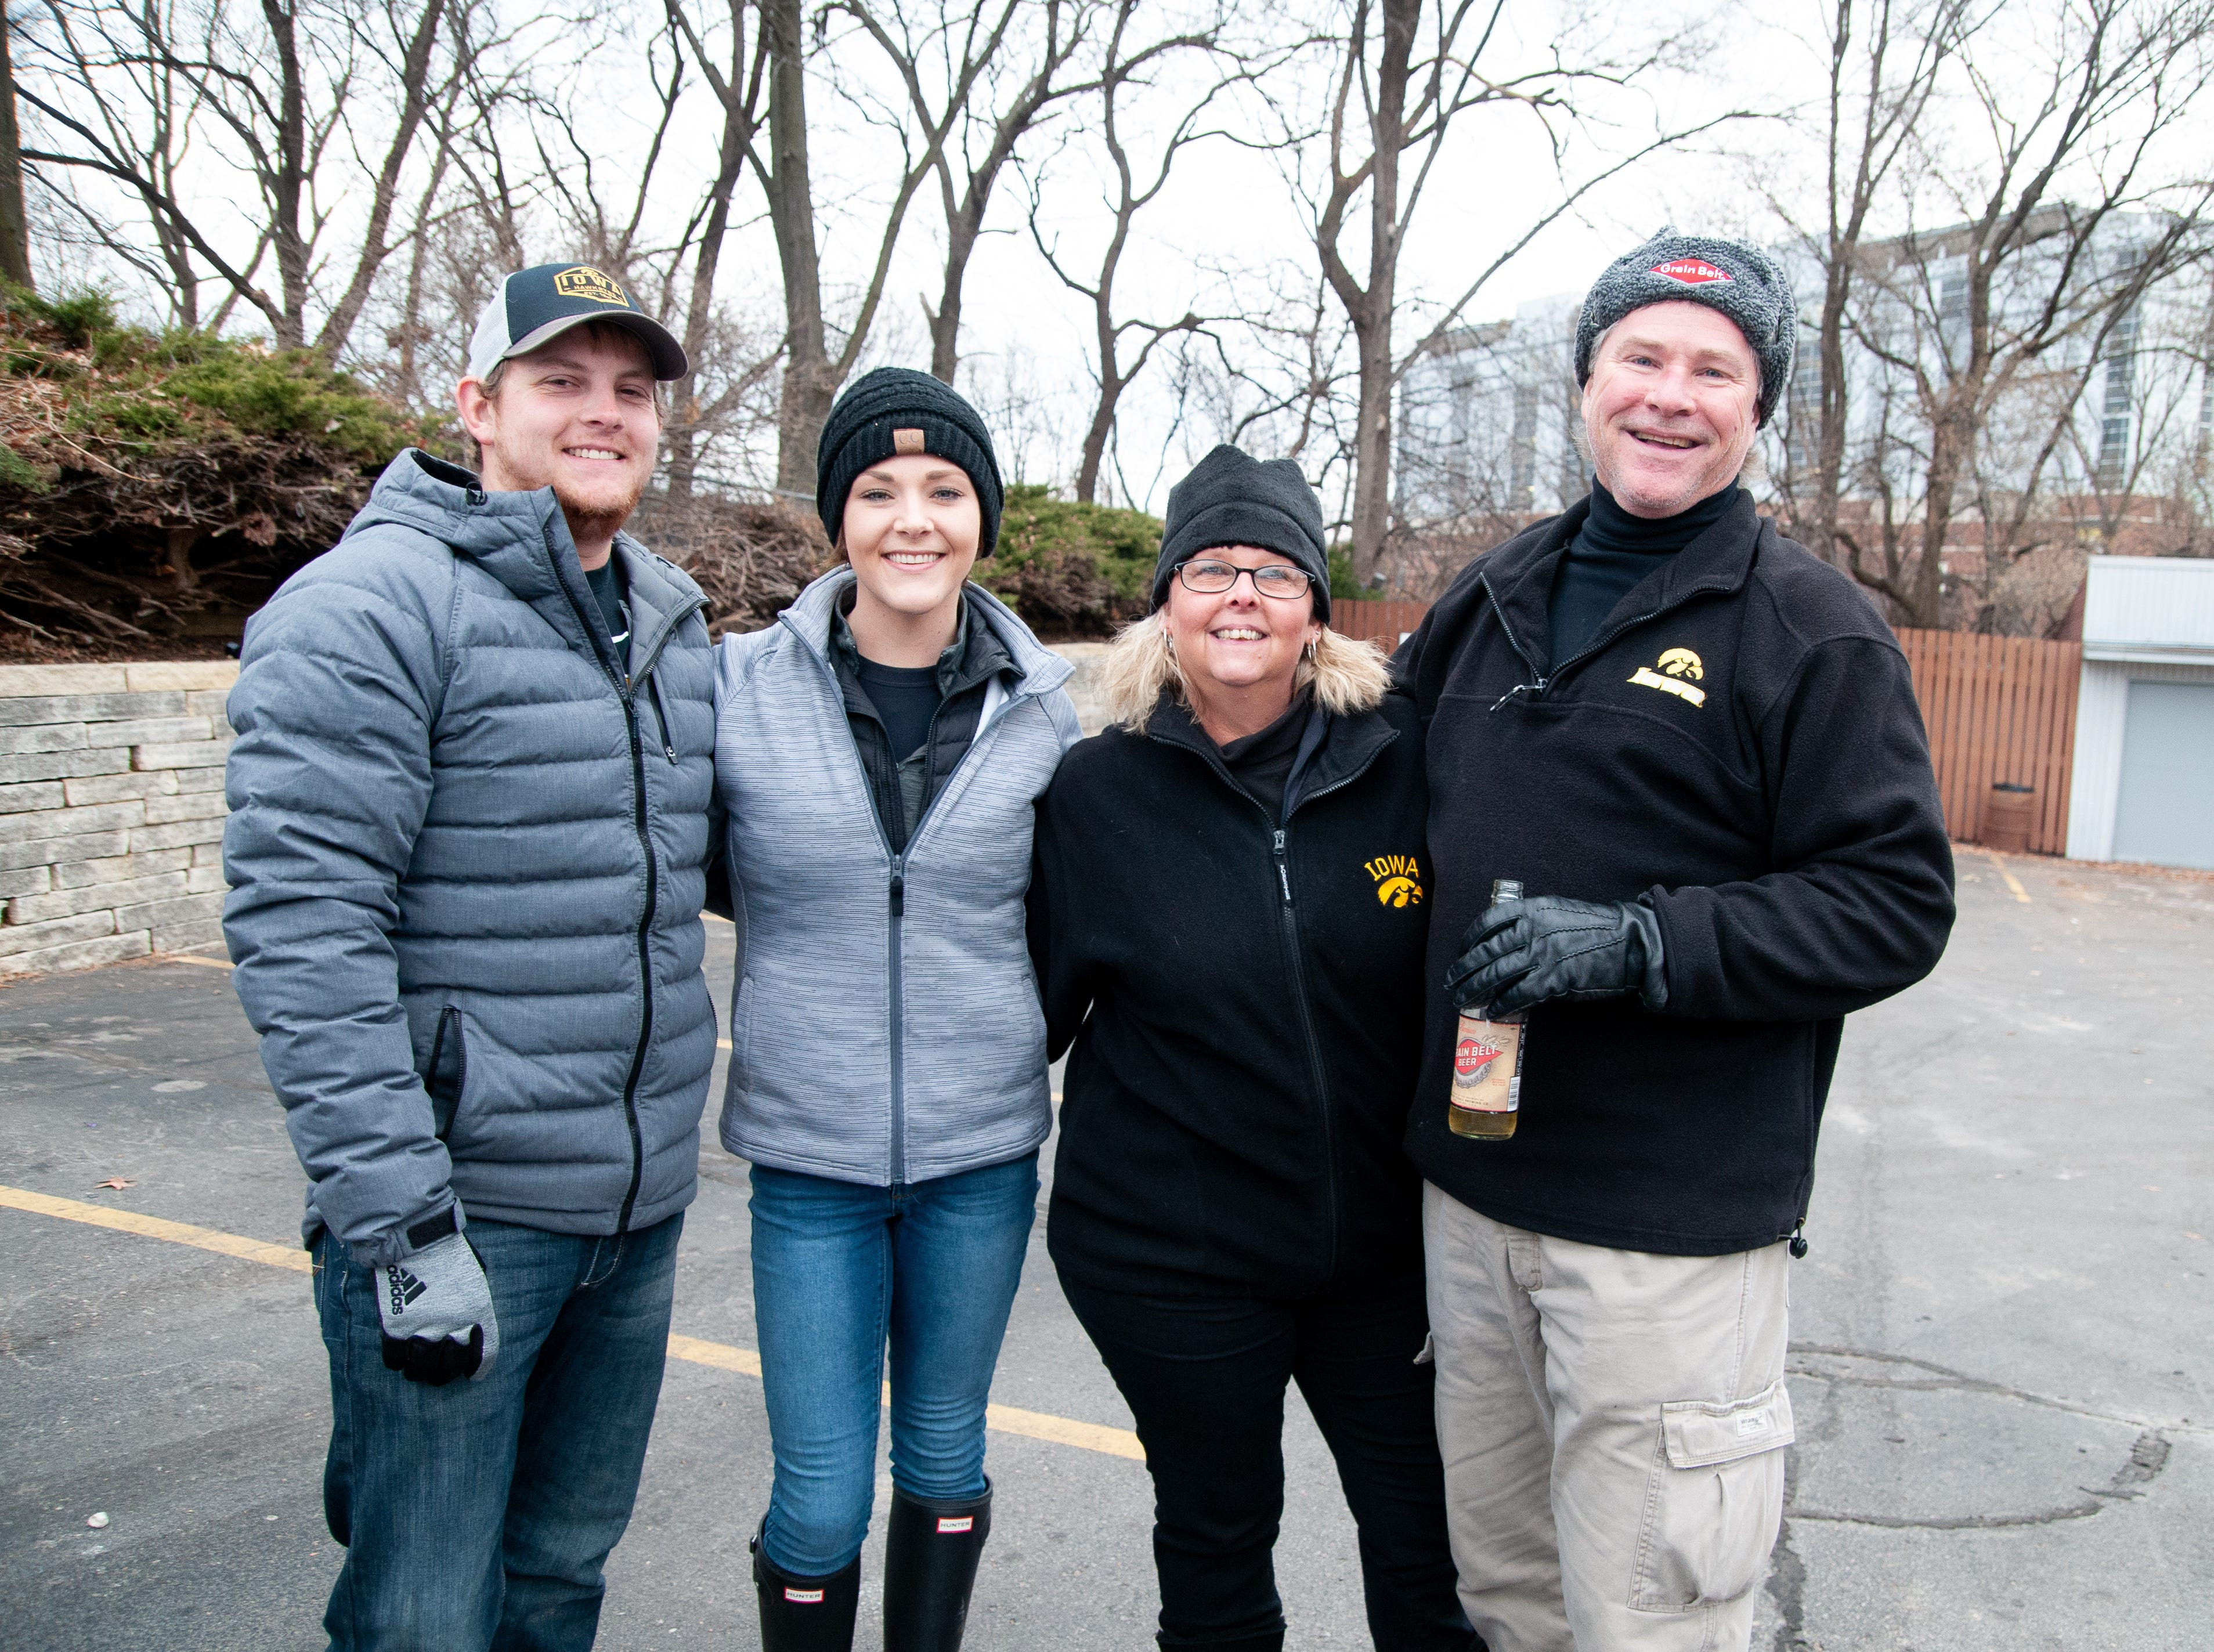 Kurt and Bernese Sorenson, left, with Lisa and Bud Wrage, of Gladbrook, Friday, Nov. 23, 2018, while tailgating before the Iowa game against Nebraska in Iowa City.